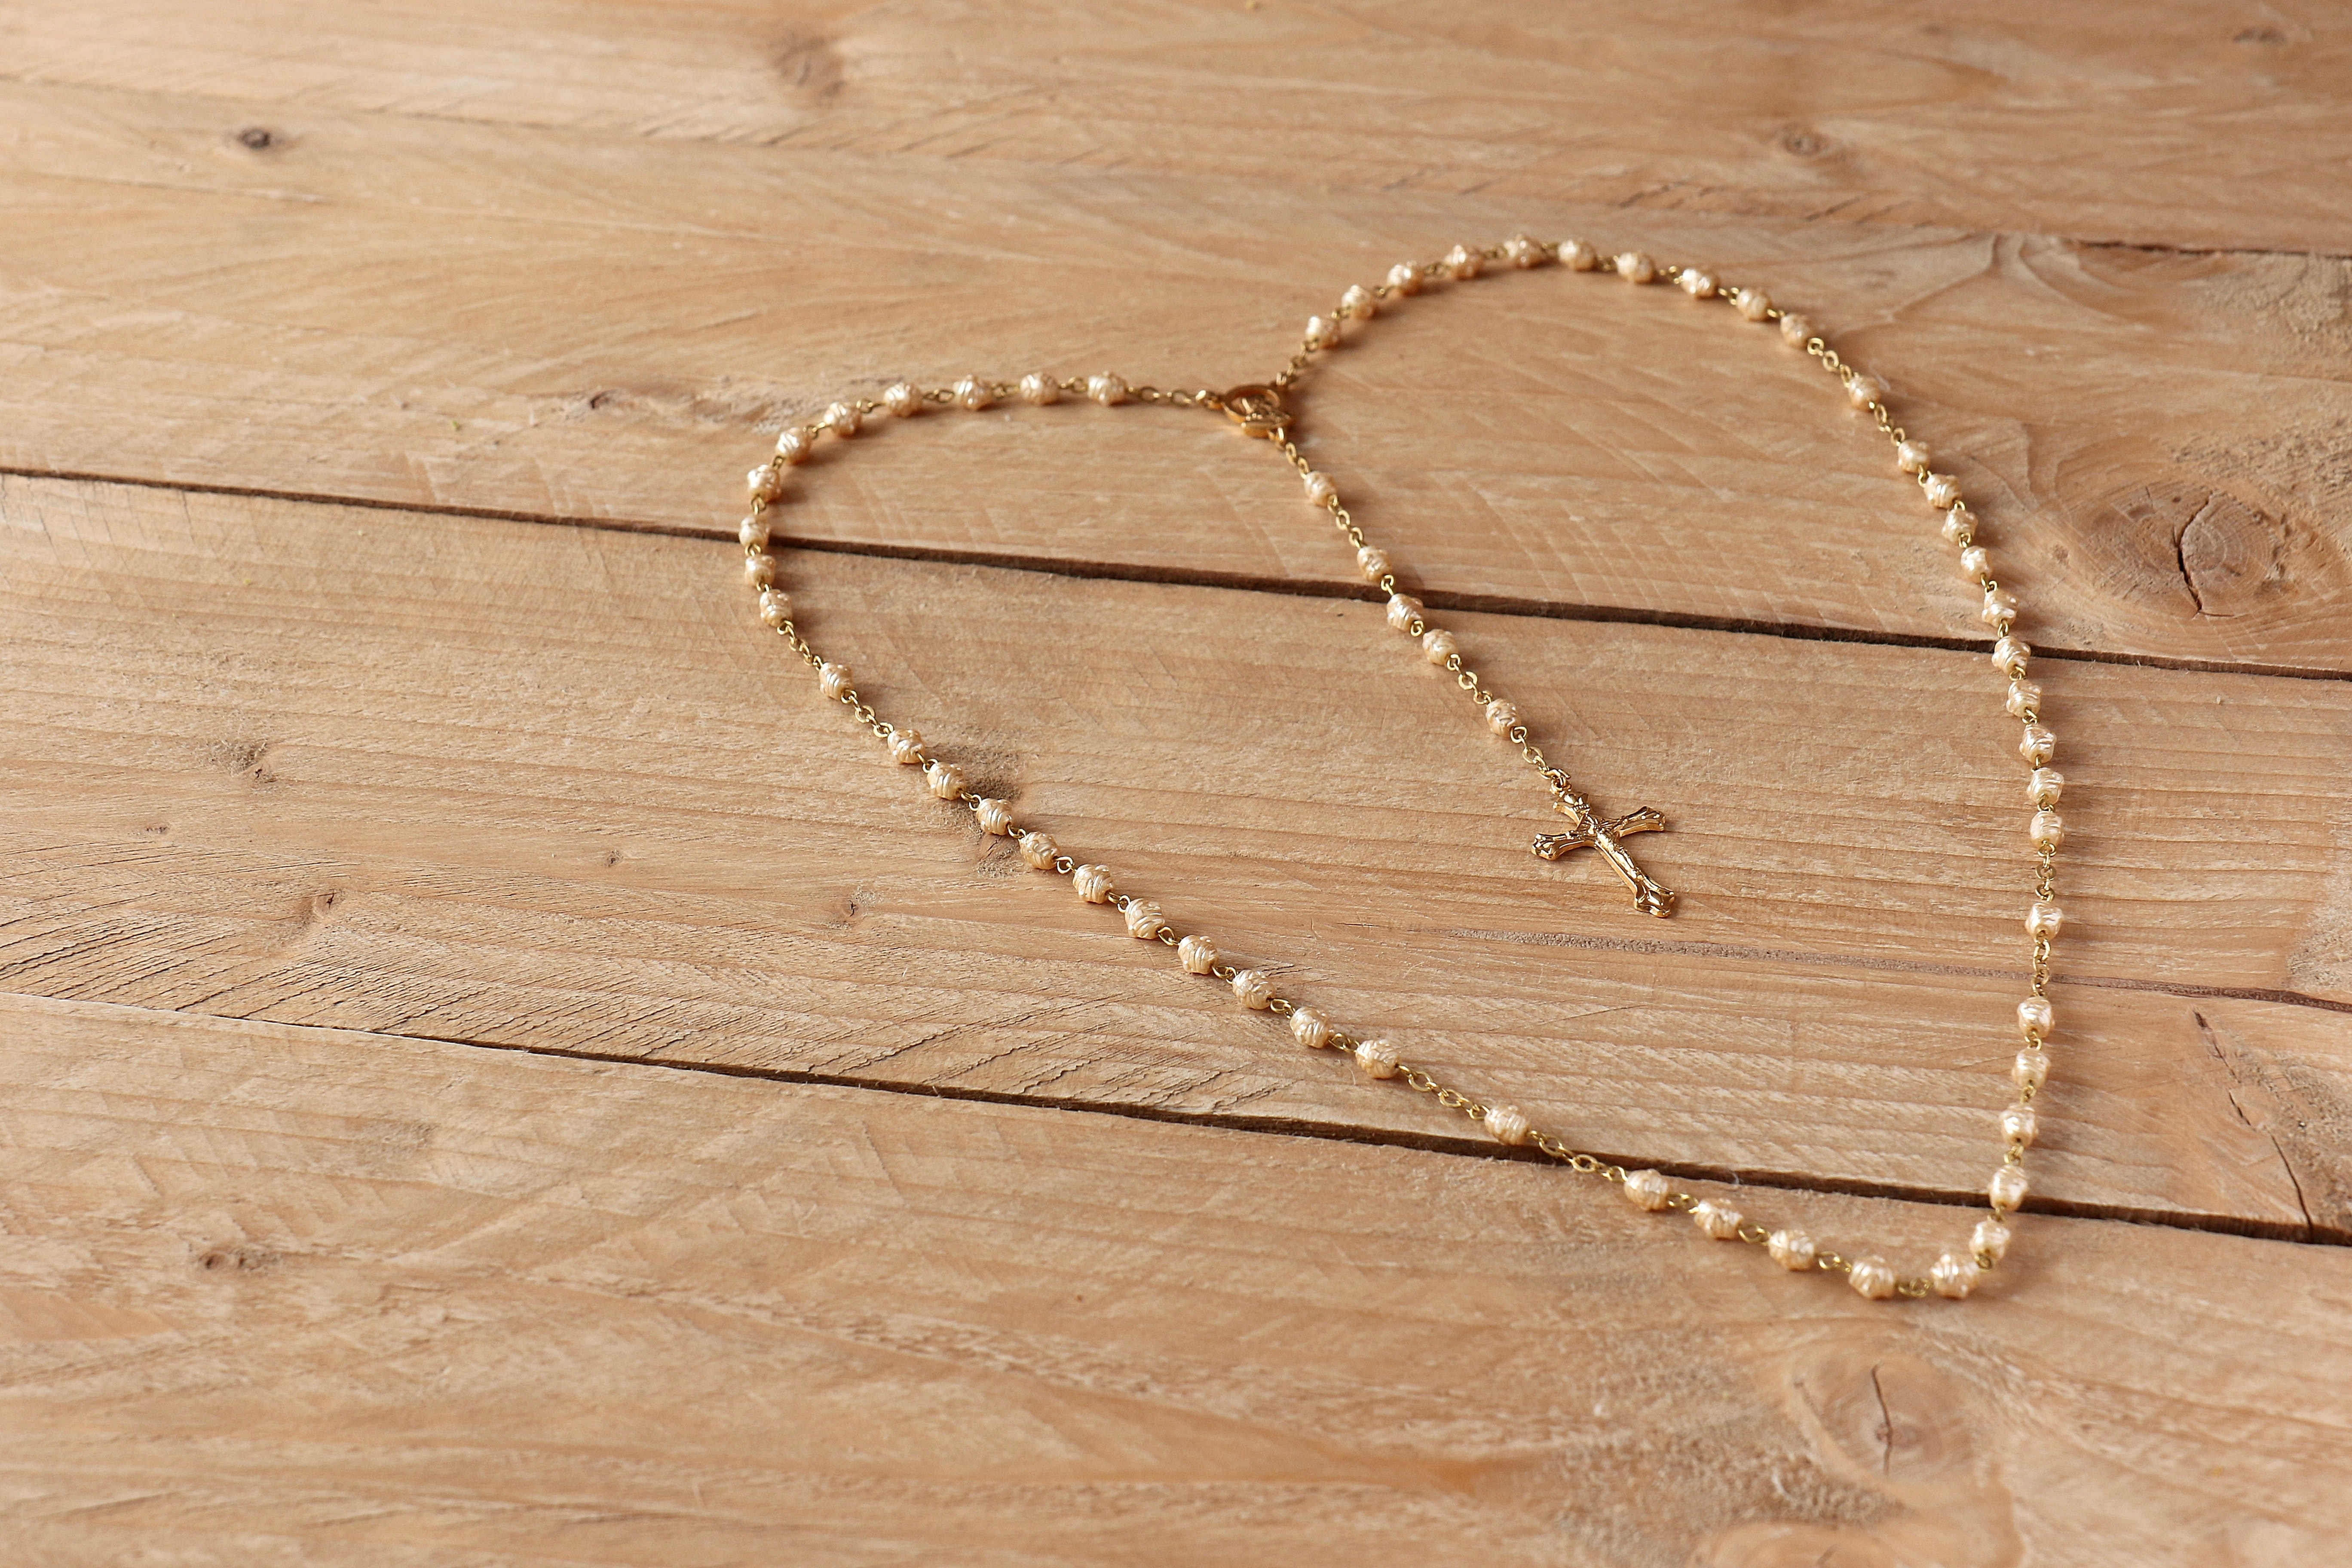 beads-cross-prayer-236336